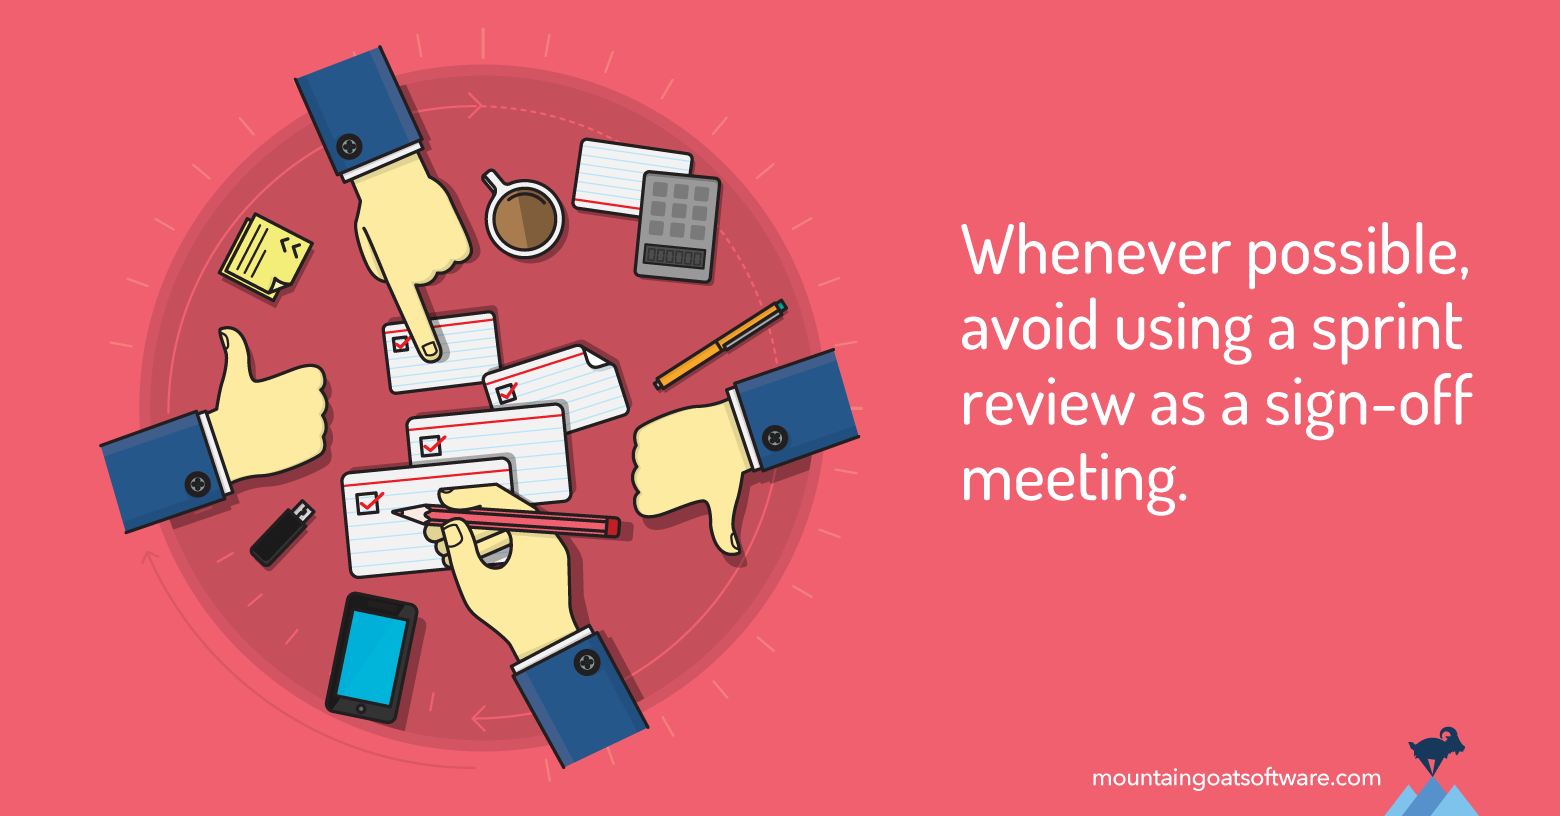 The Sprint Review as a Sign-Off Meeting